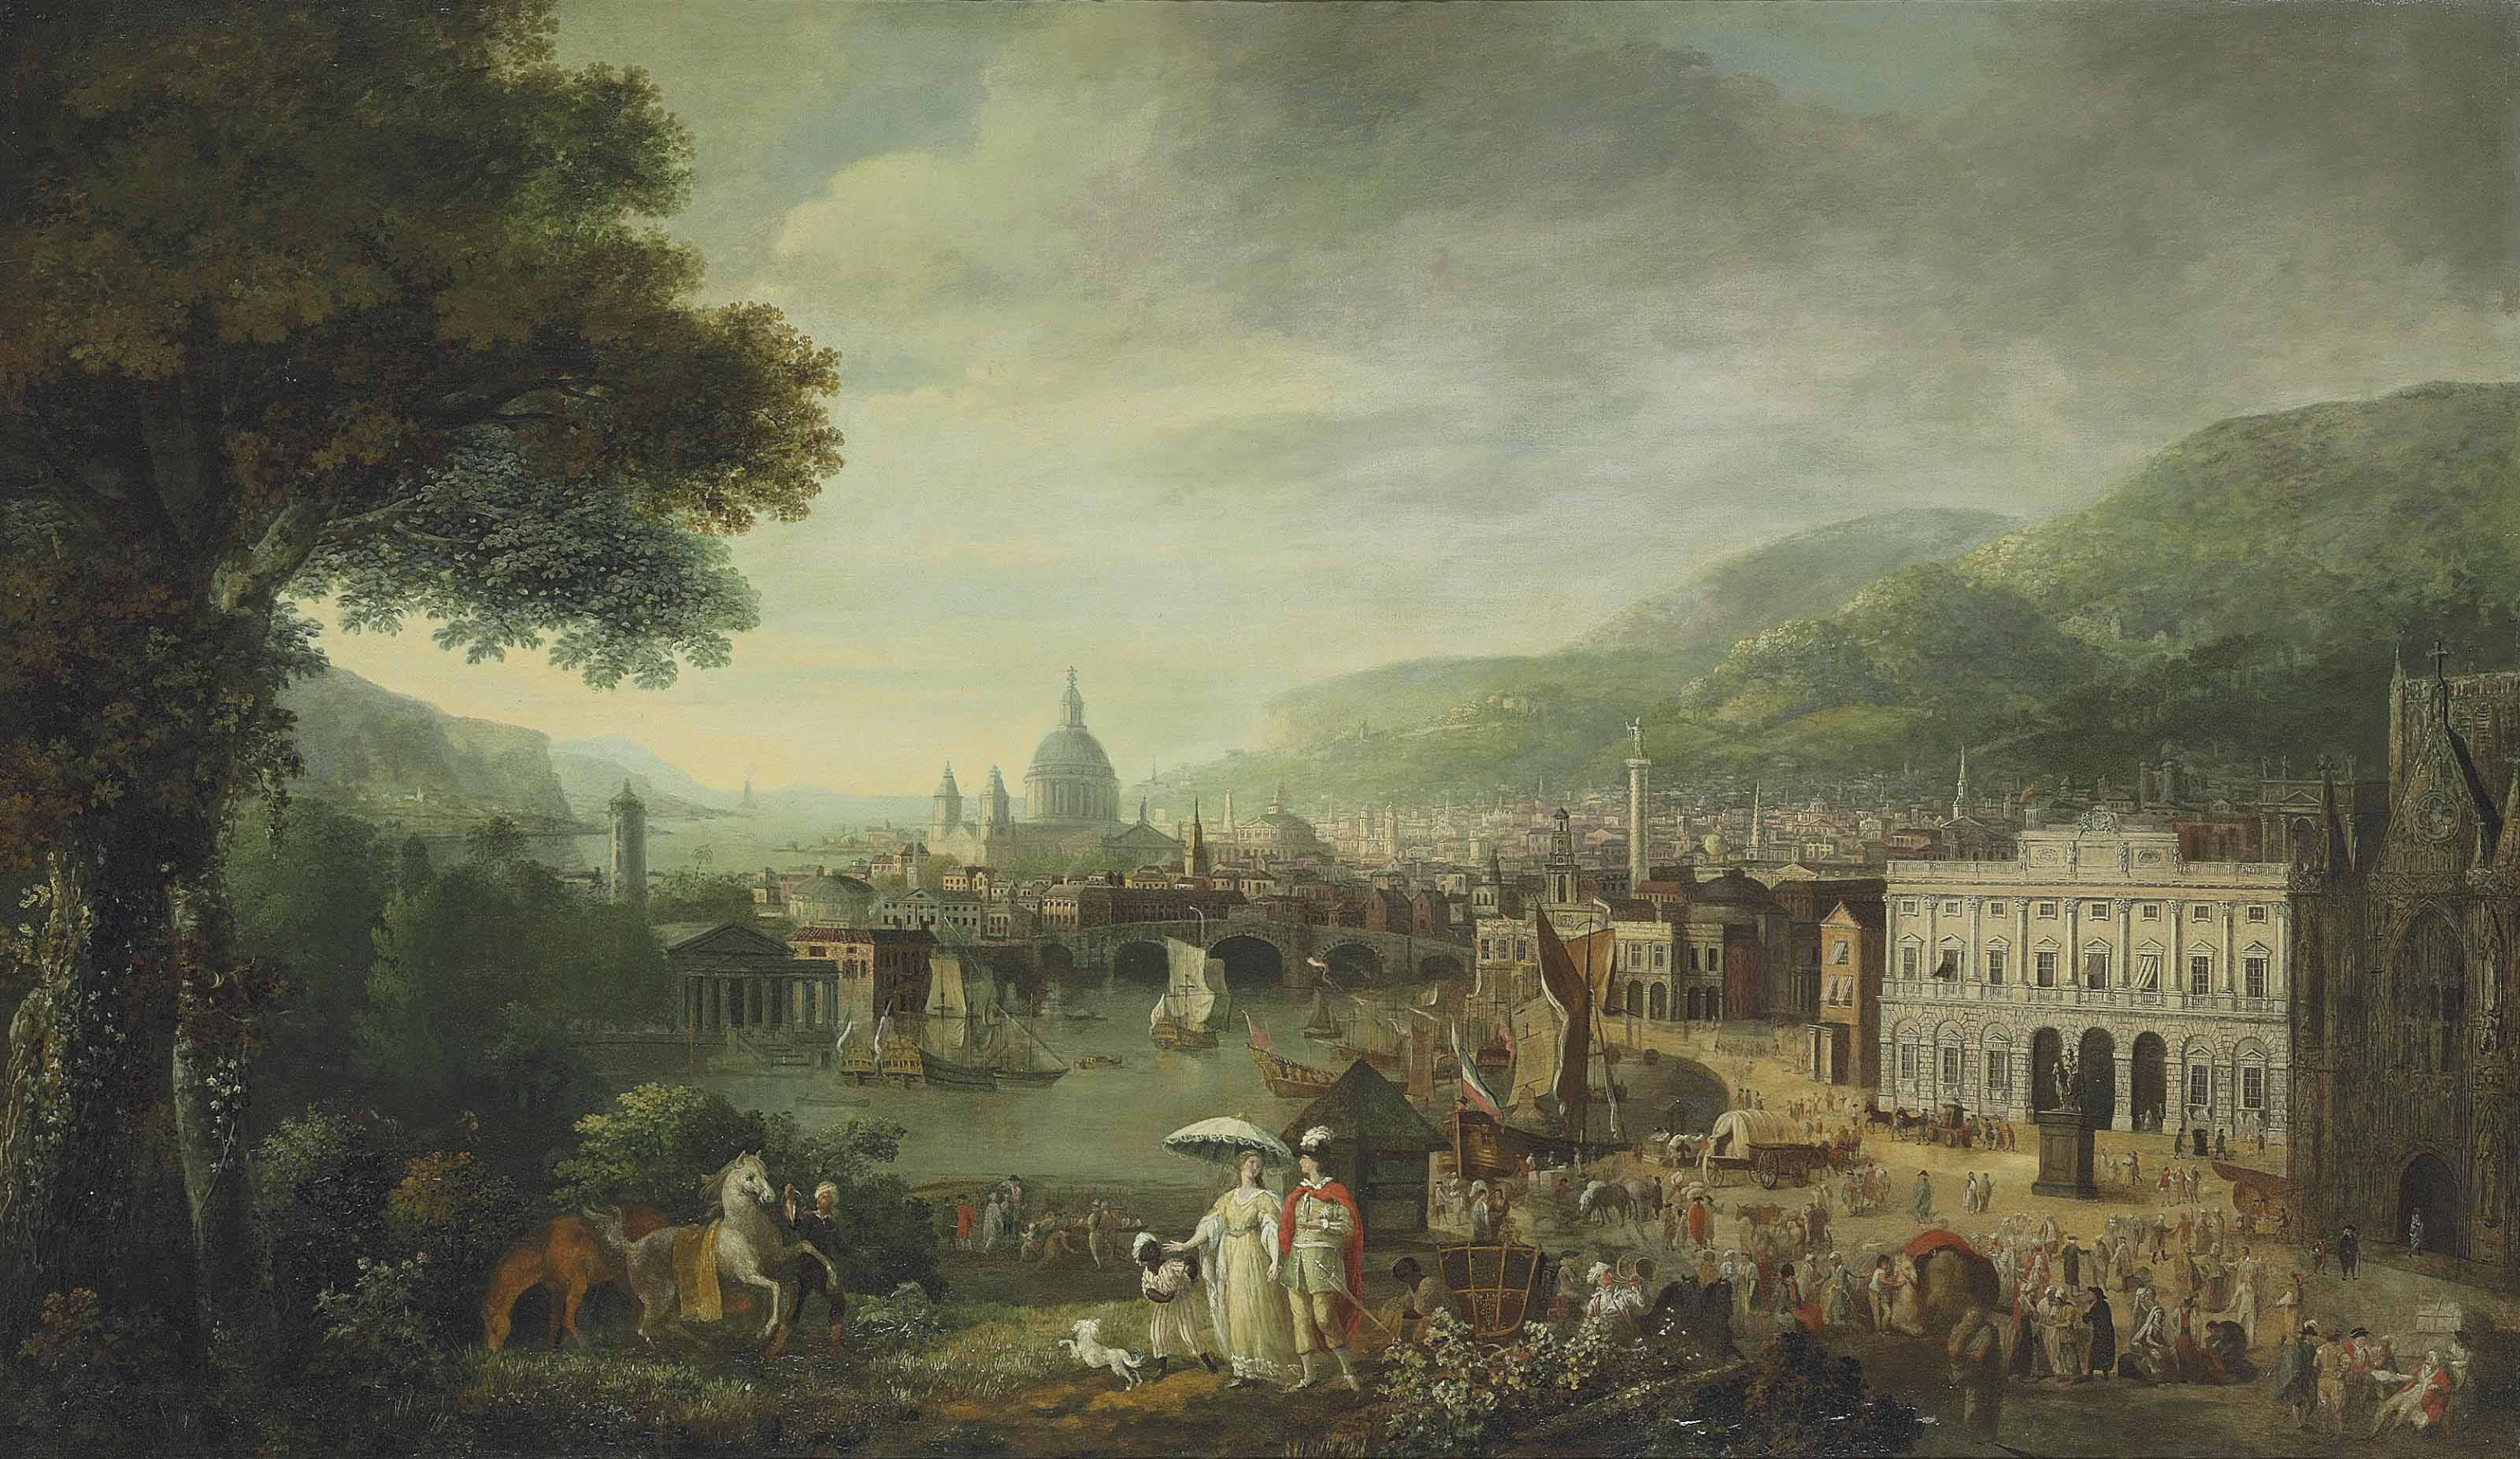 A capriccio of London as a seaport, with the Bank of England, Monument, Westminster Abbey, and Saint Paul's Cathedral